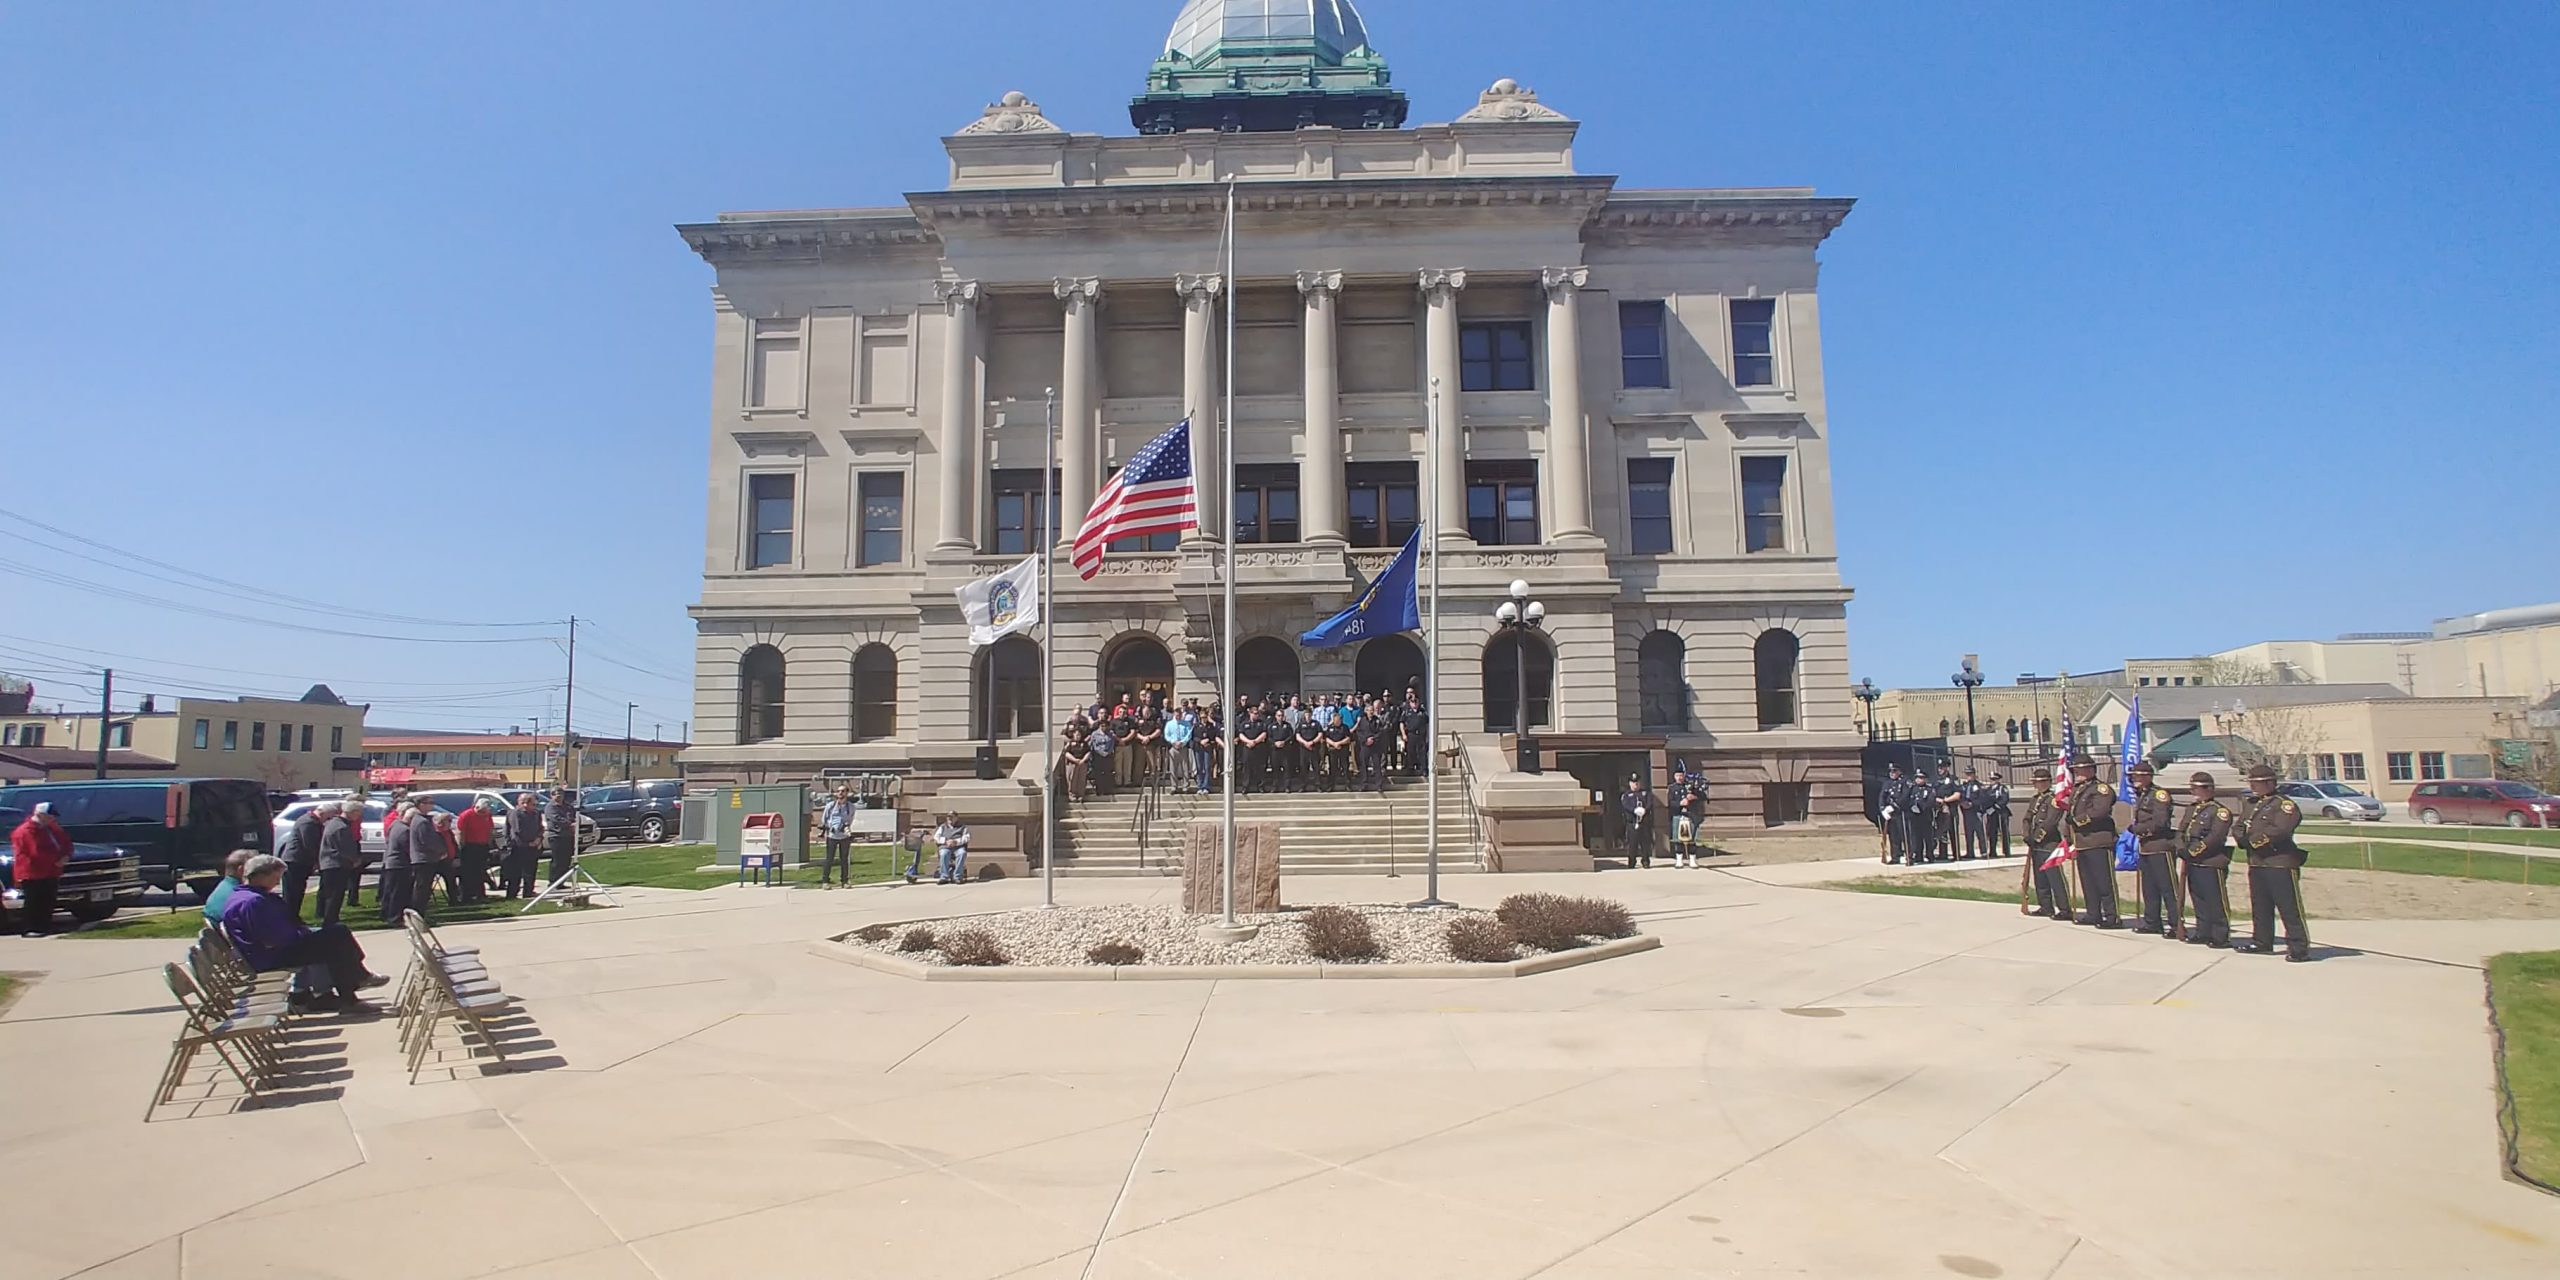 Manitowoc's Peace Officers Memorial Service